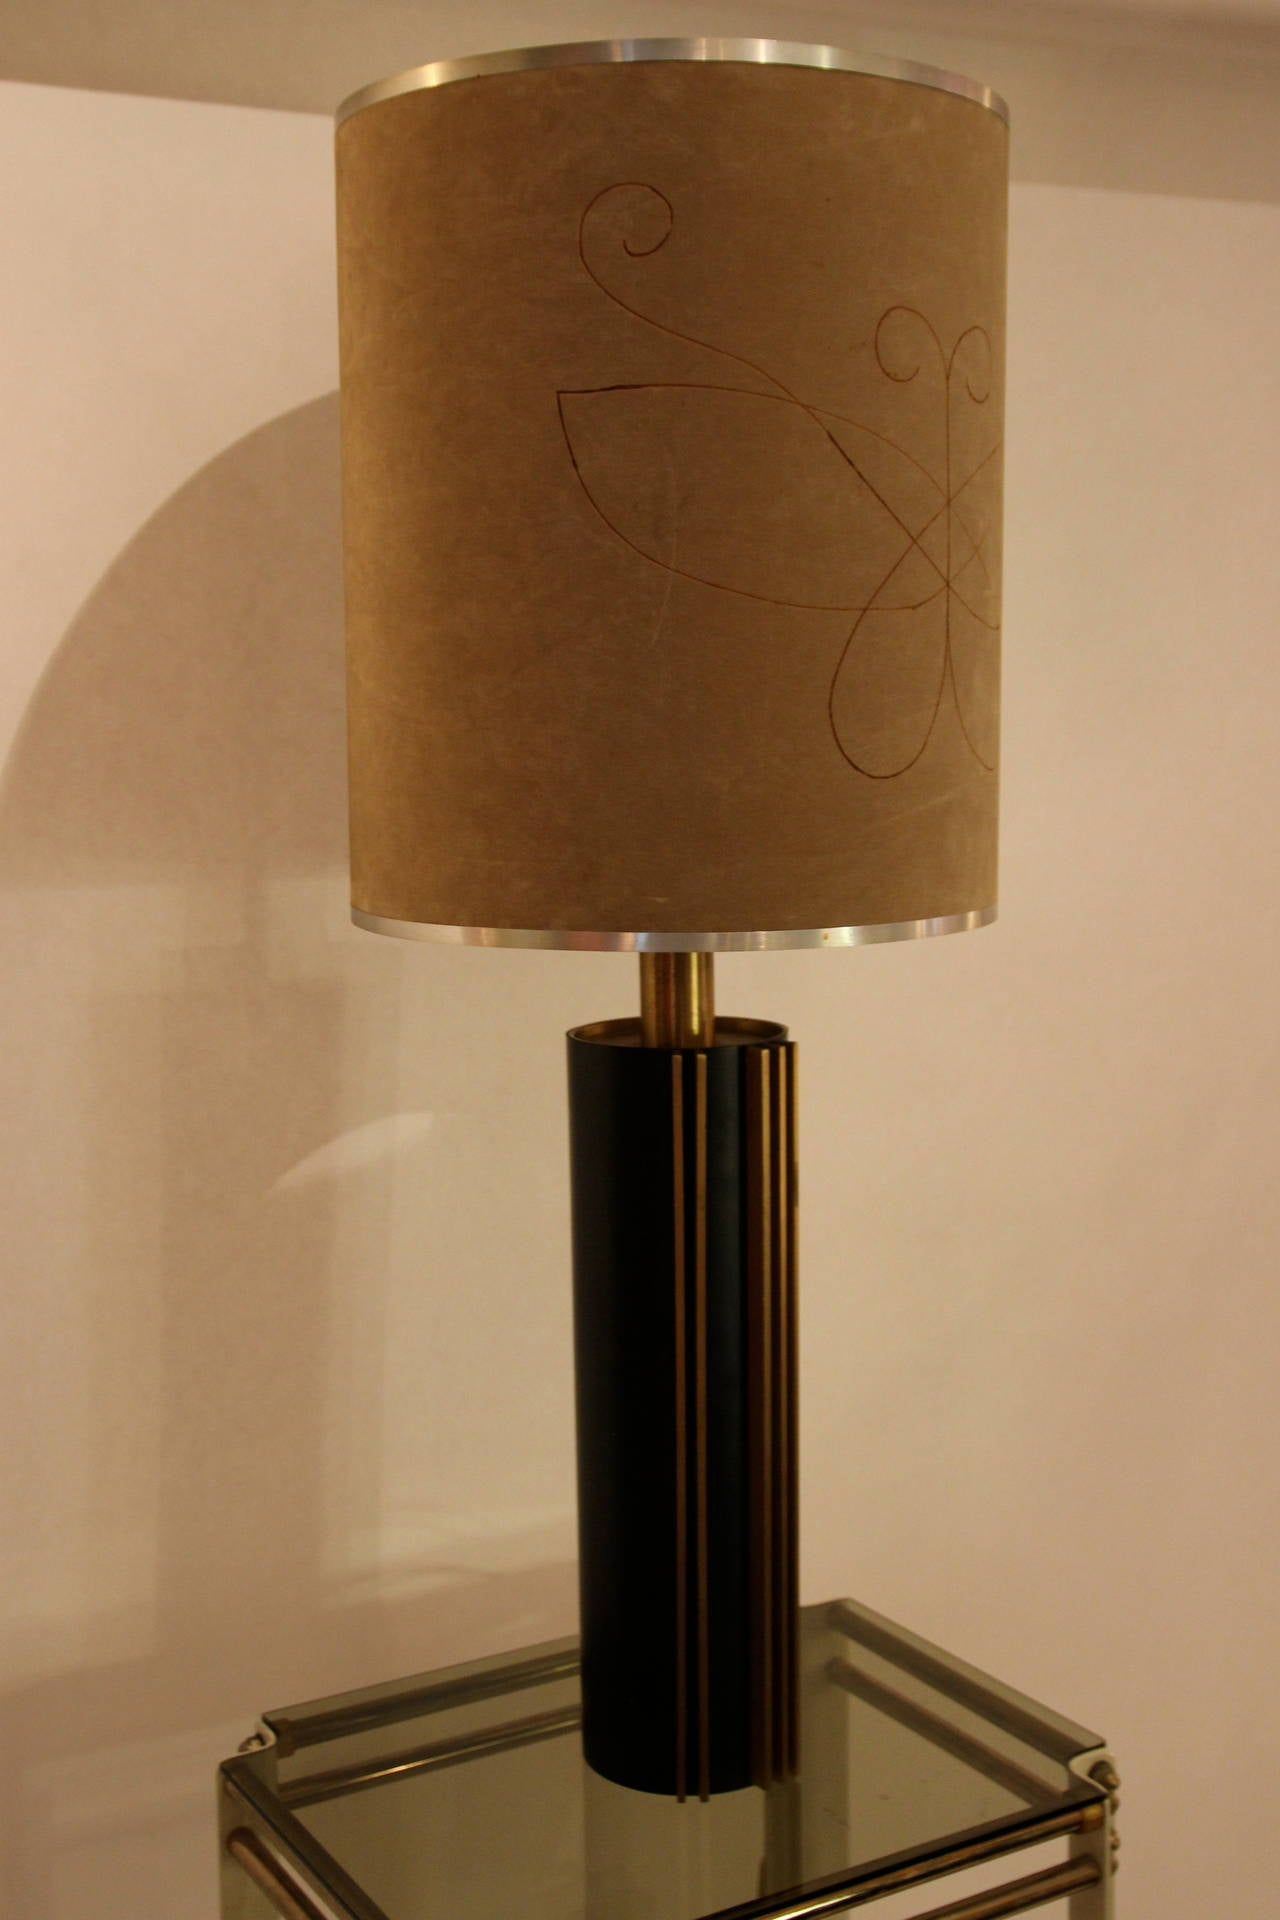 Mid-Century Modern Angelo Brotto Style Table Lamp circa 1970 Italy, Esperia Edition For Sale